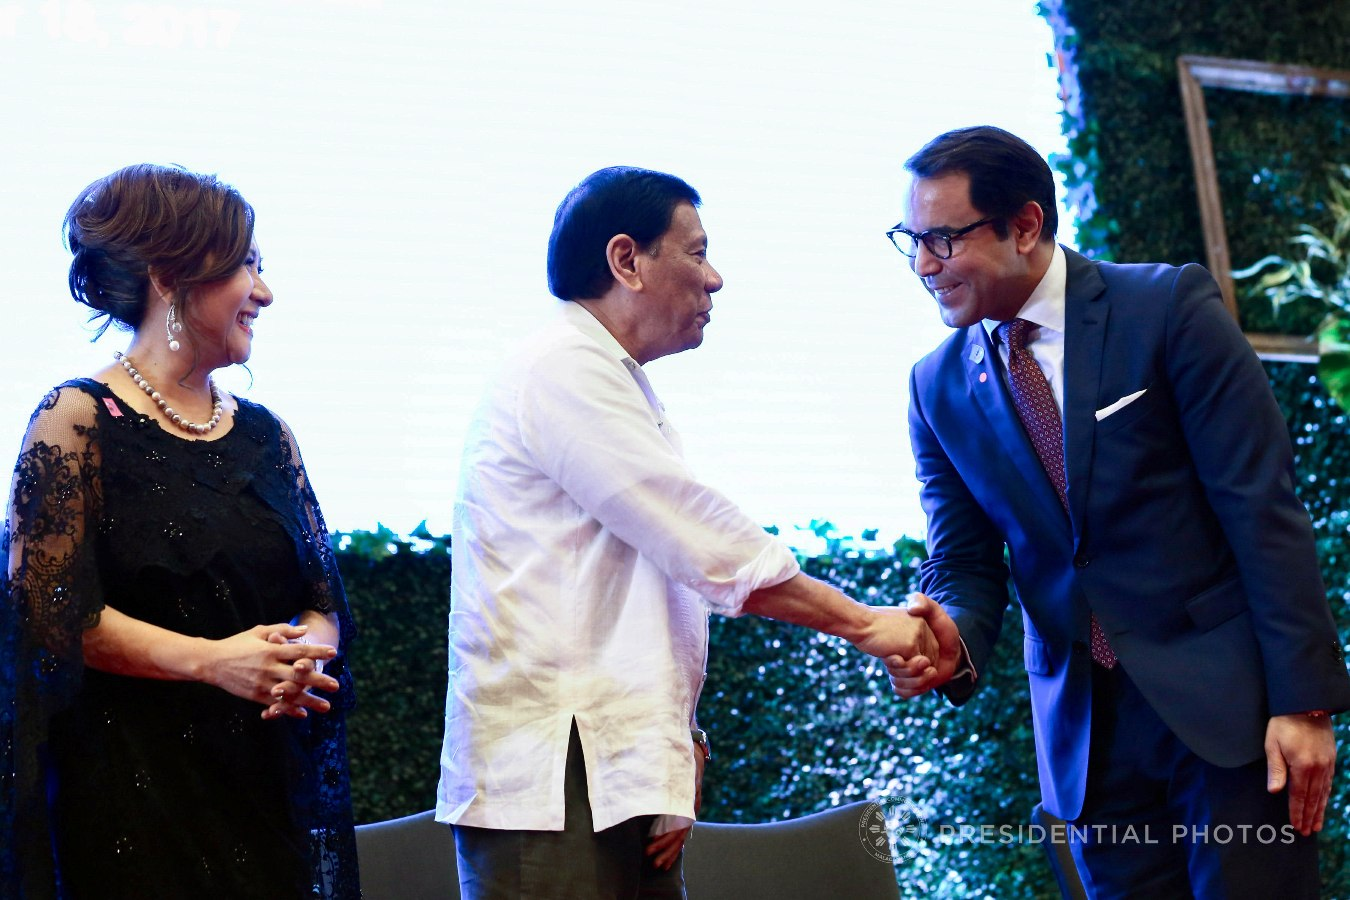 President Rodrigo Roa Duterte shows a gesture of appreciation to Sol Terra Design Chairman Ryan Sefiane who is among the partner organizations of the Anti-Trafficking OFW Movement (ATOM) recognized during the 7th anniversary of the public service show, 'Buhay OFW', at the Sofitel Philippine Plaza in Pasay City on October 18, 2017. Also in the photo is ATOM Founding Chairperson Marissa Del Mar. RICHARD MADELO/PRESIDENTIAL PHOTO